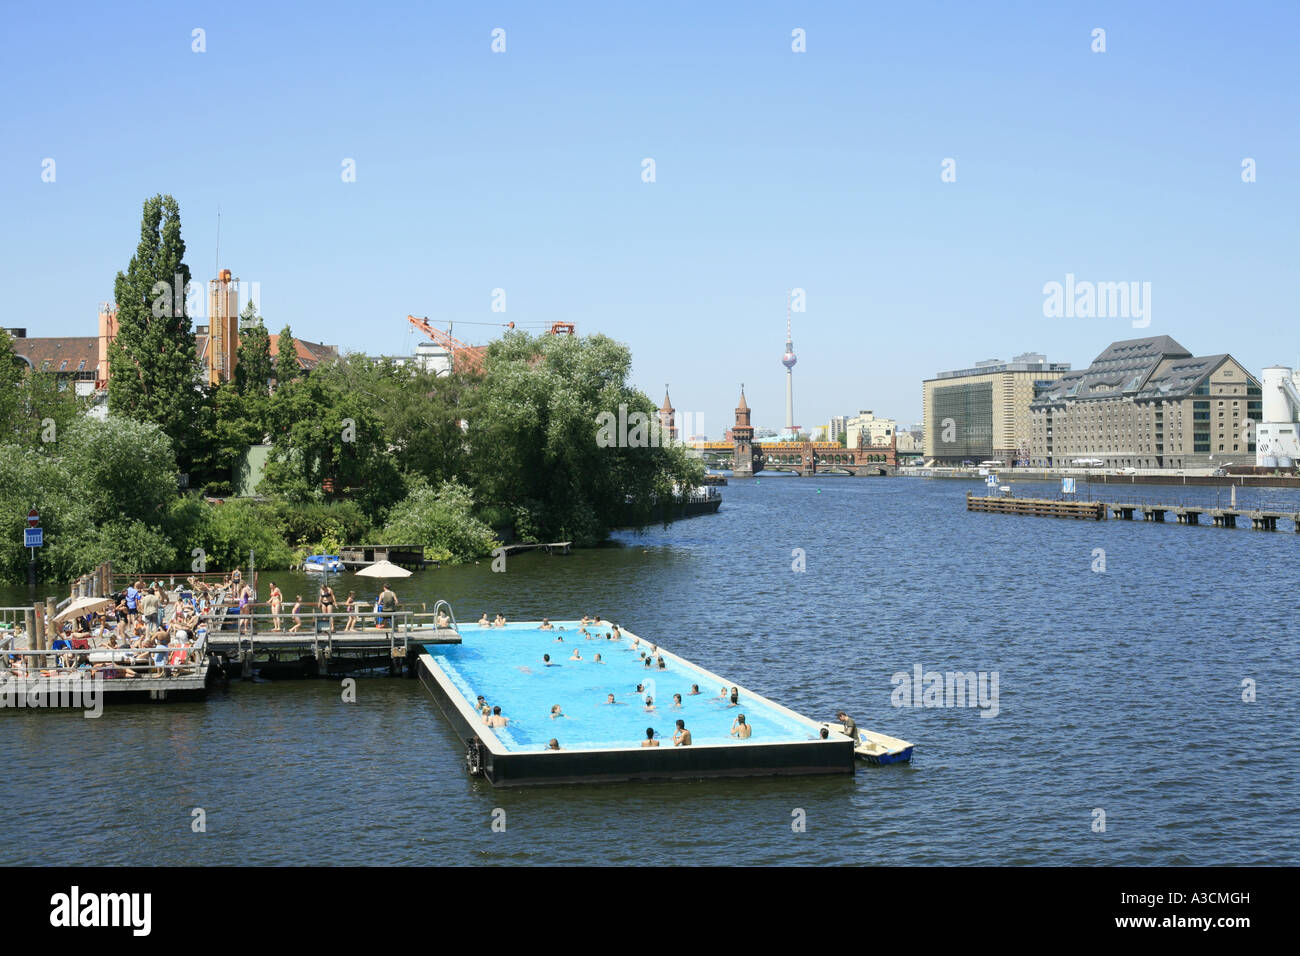 a pool ship in the spree germany berlin stock photo 10744576 alamy. Black Bedroom Furniture Sets. Home Design Ideas